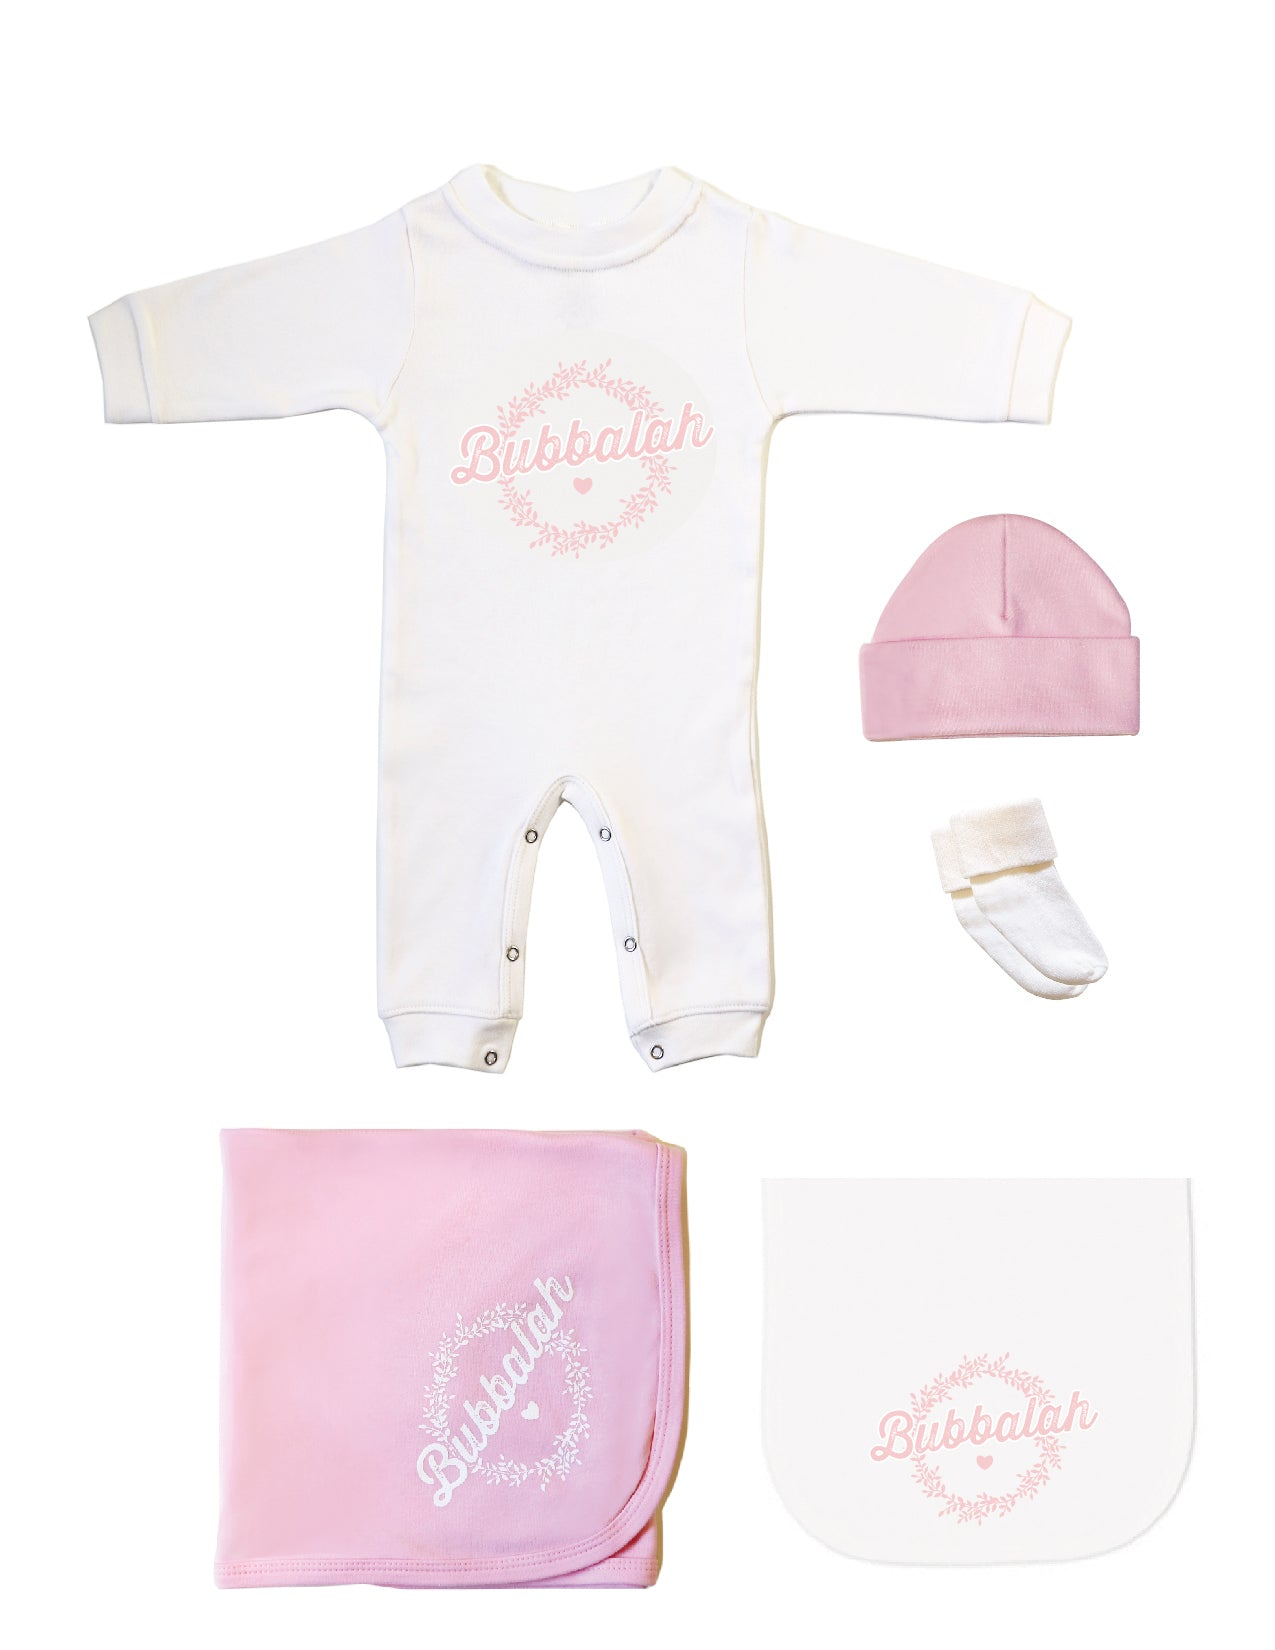 "Bubbalah White ""Sleep + Play Today"" Set with Rose Ink"